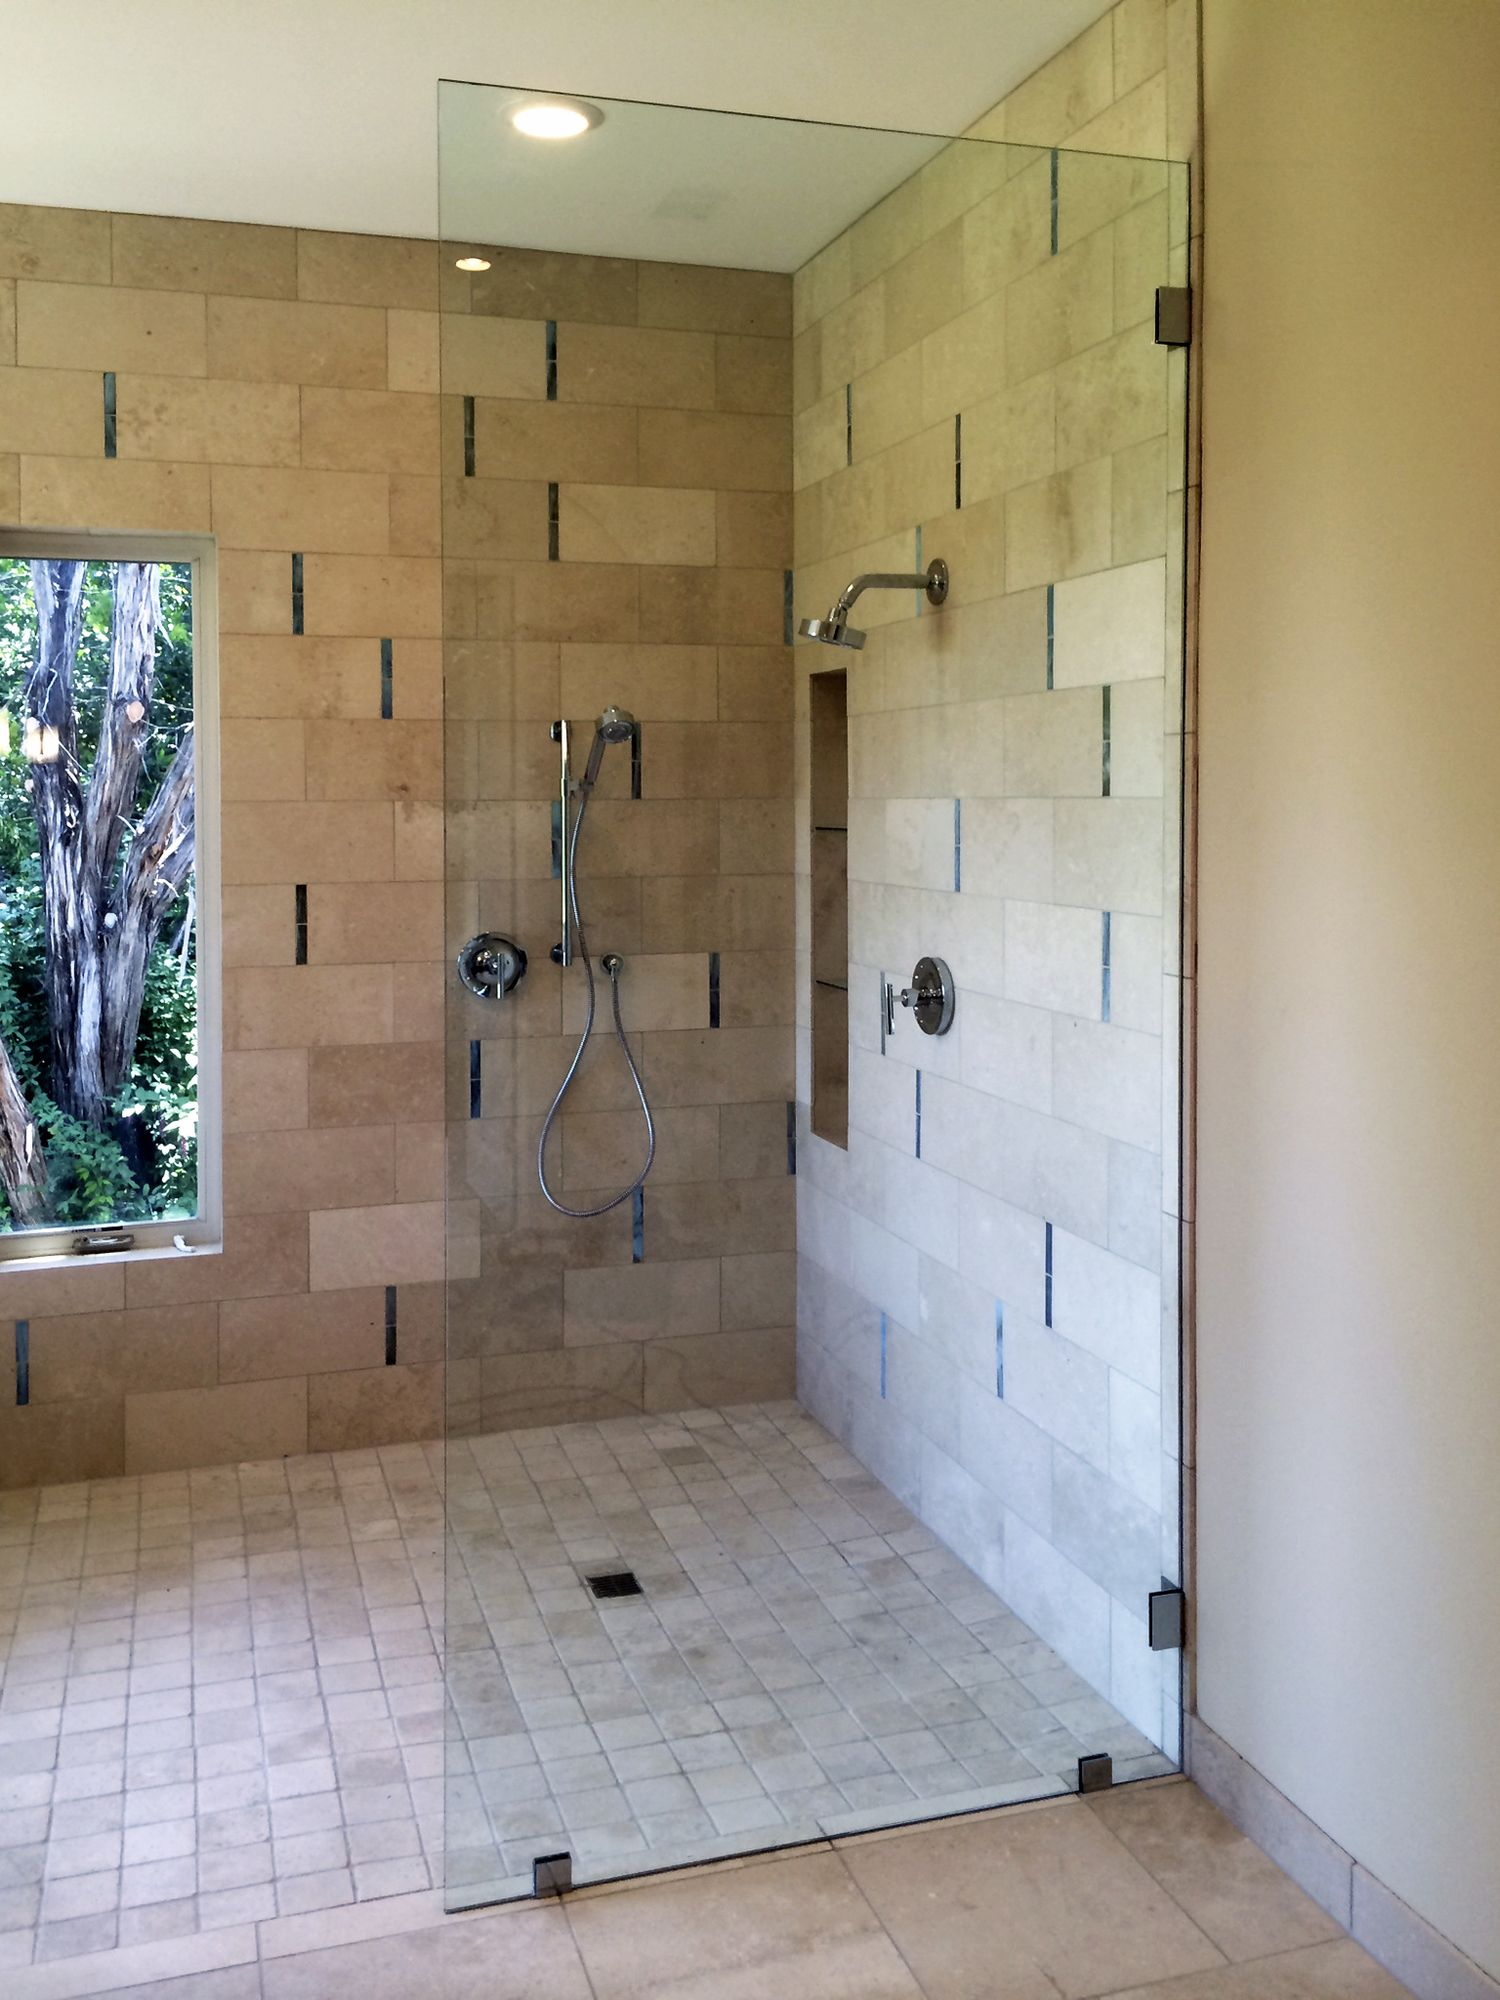 Half Glass Shower Door Splash You Should Reach Your Choices Based On Own Individual Strategy When Envisioning Sh